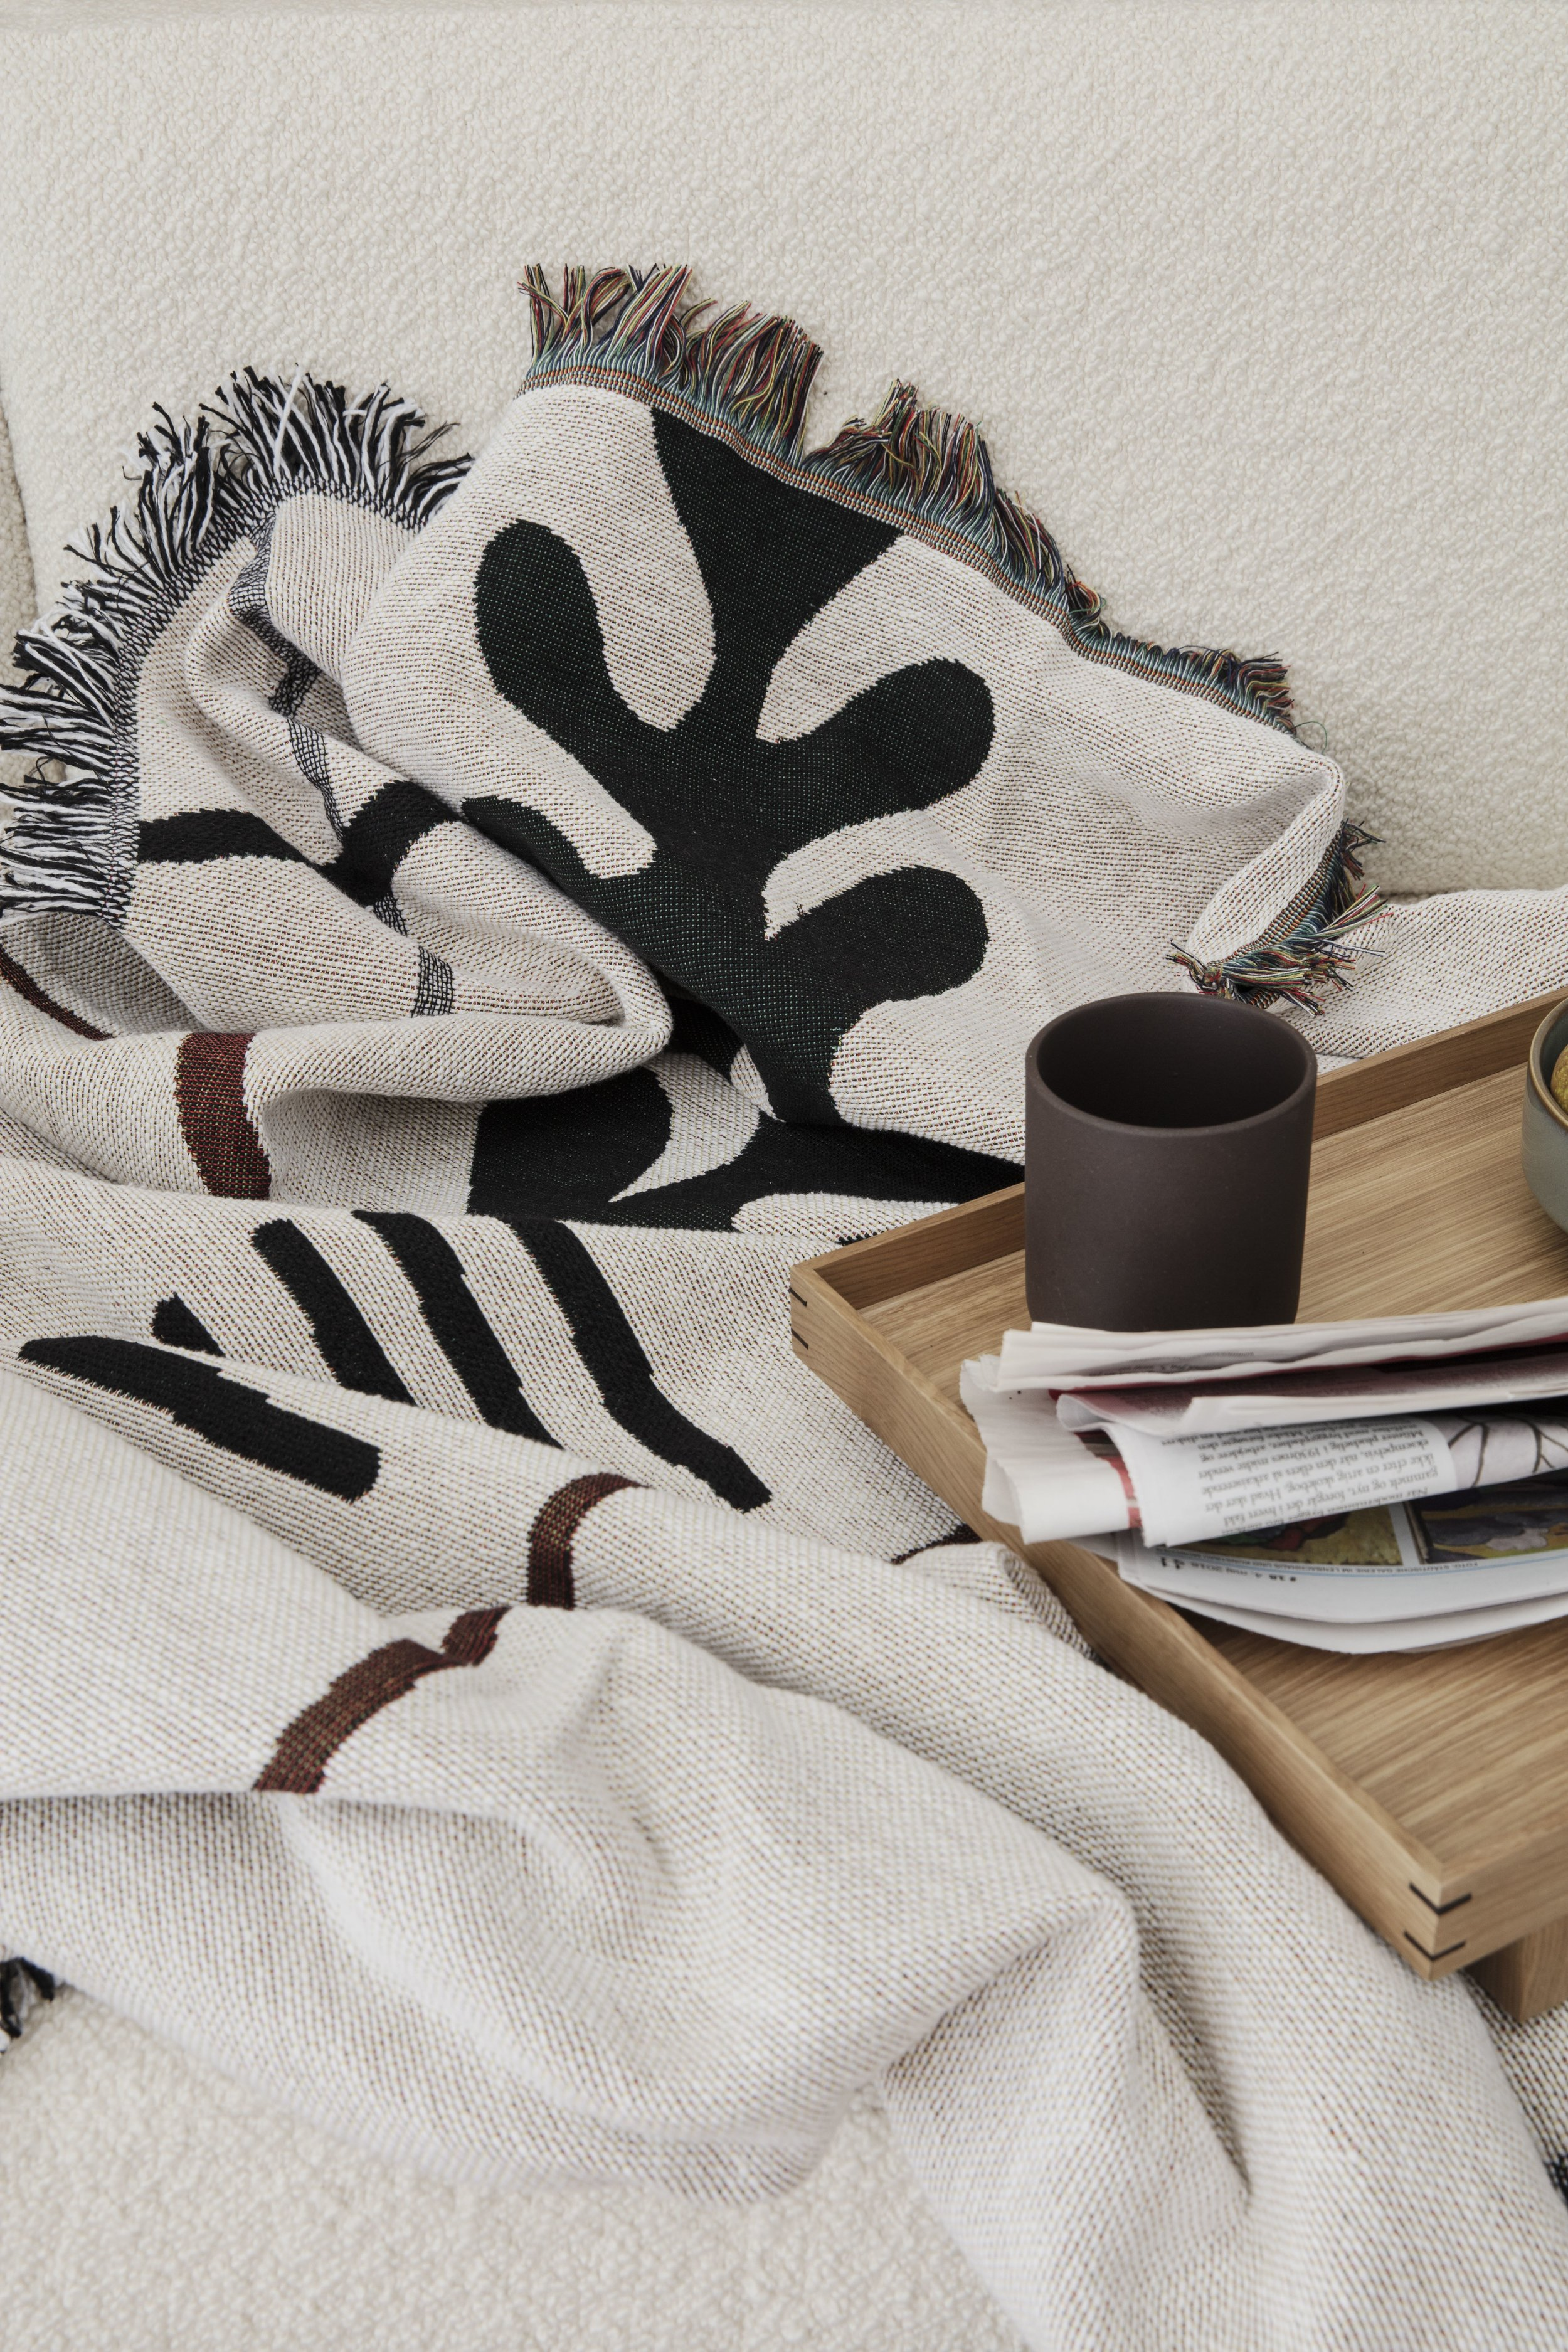 Mirage blanket, ferm living, textiles, throw, scandinavian design, home accesories .jpg